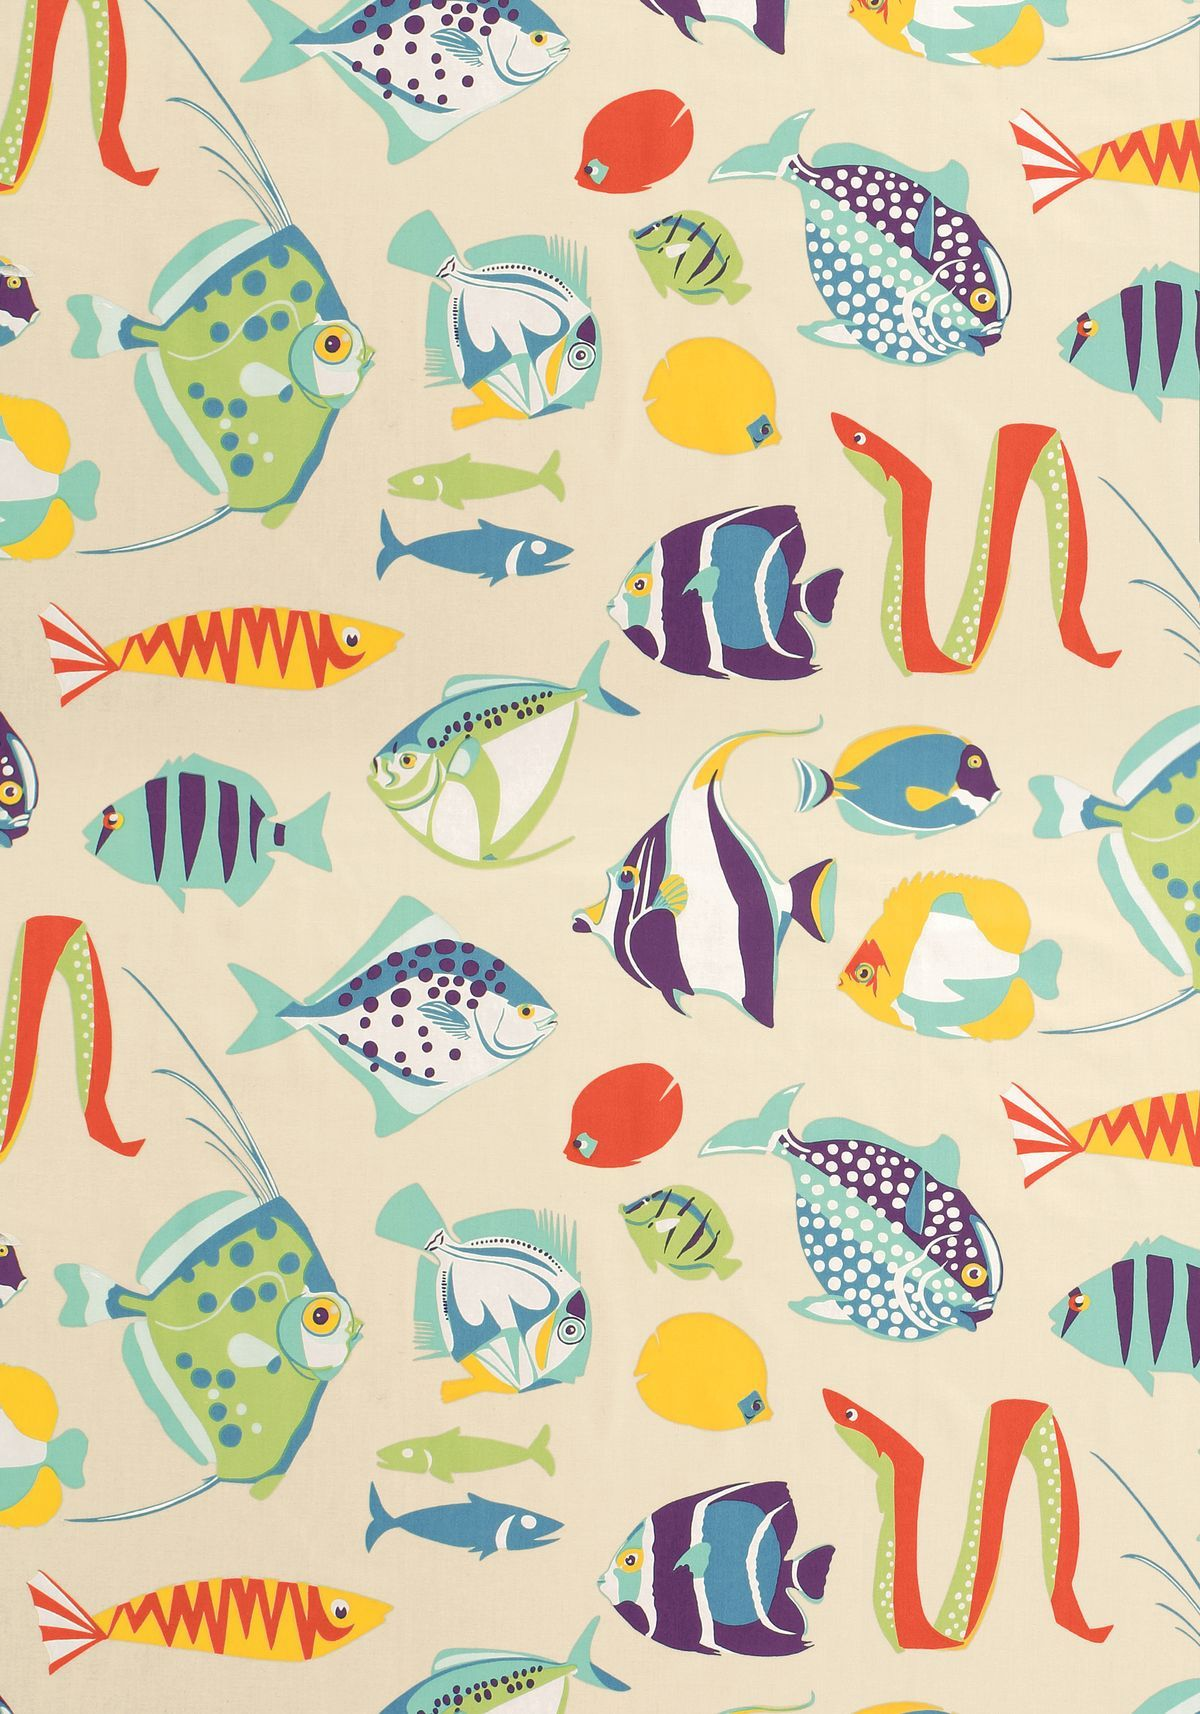 love this quirky whimsical pattern